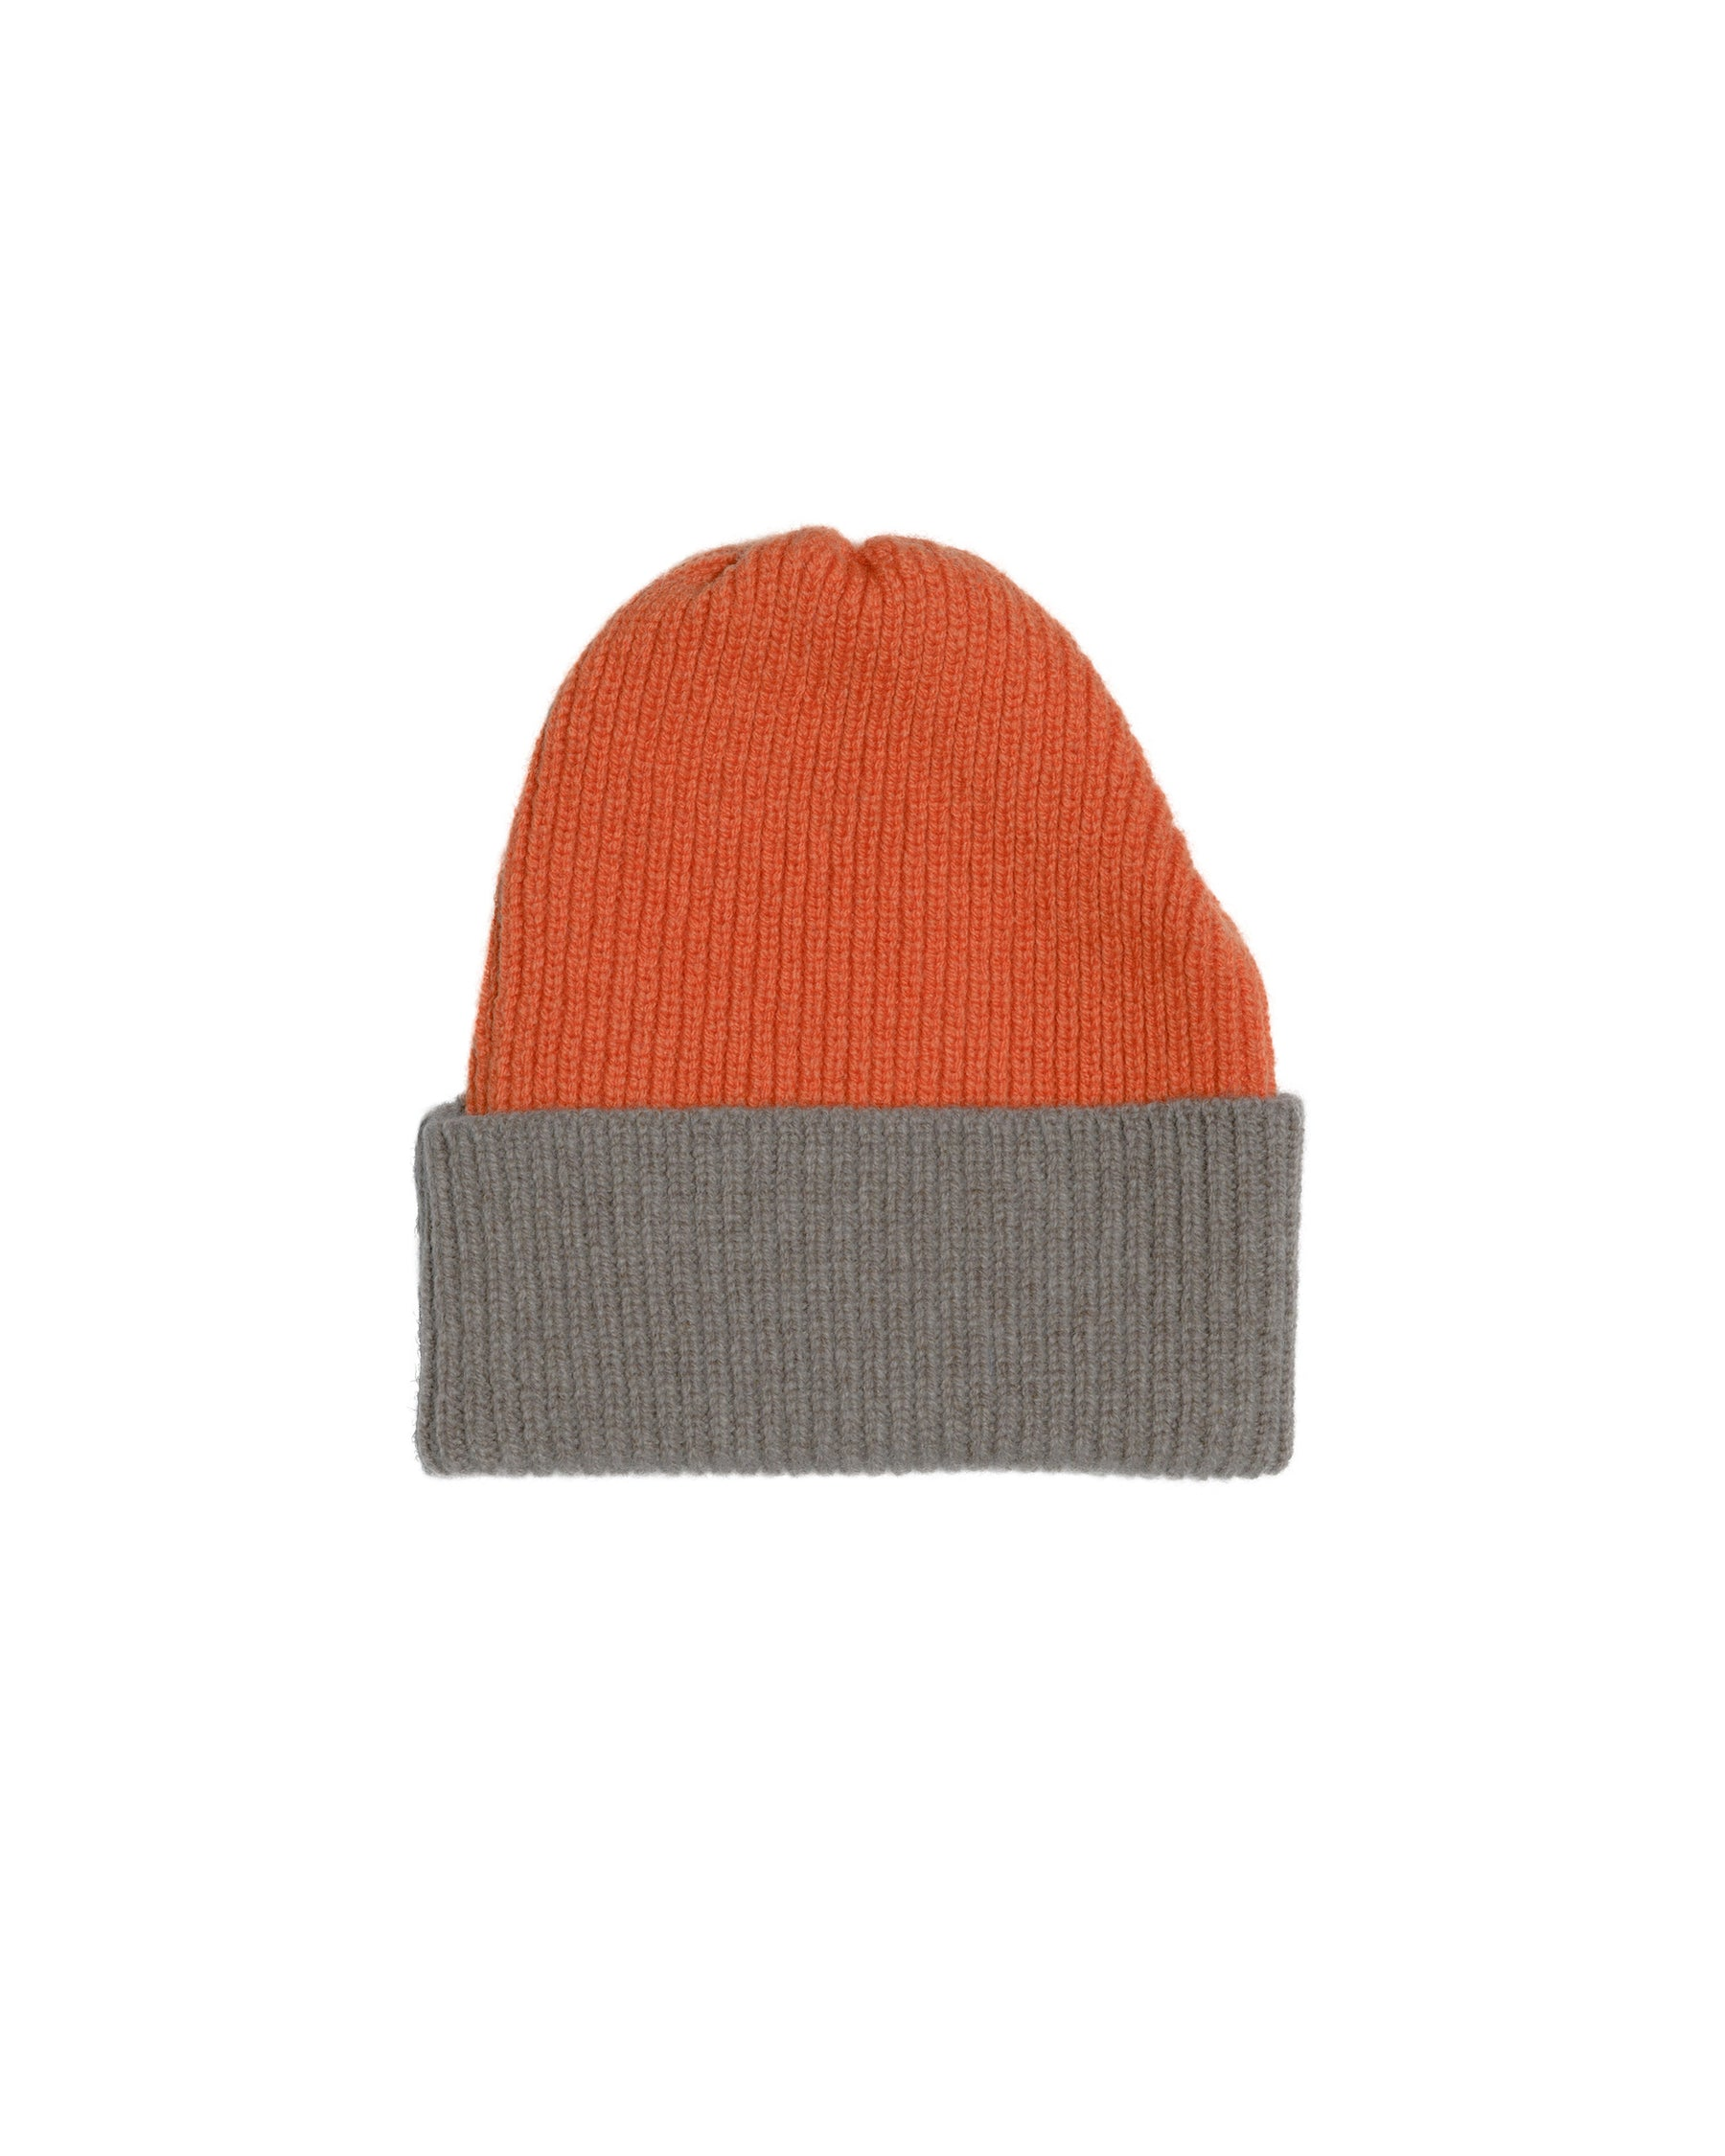 CONTRA LAMBSWOOL HAT • ORANGE